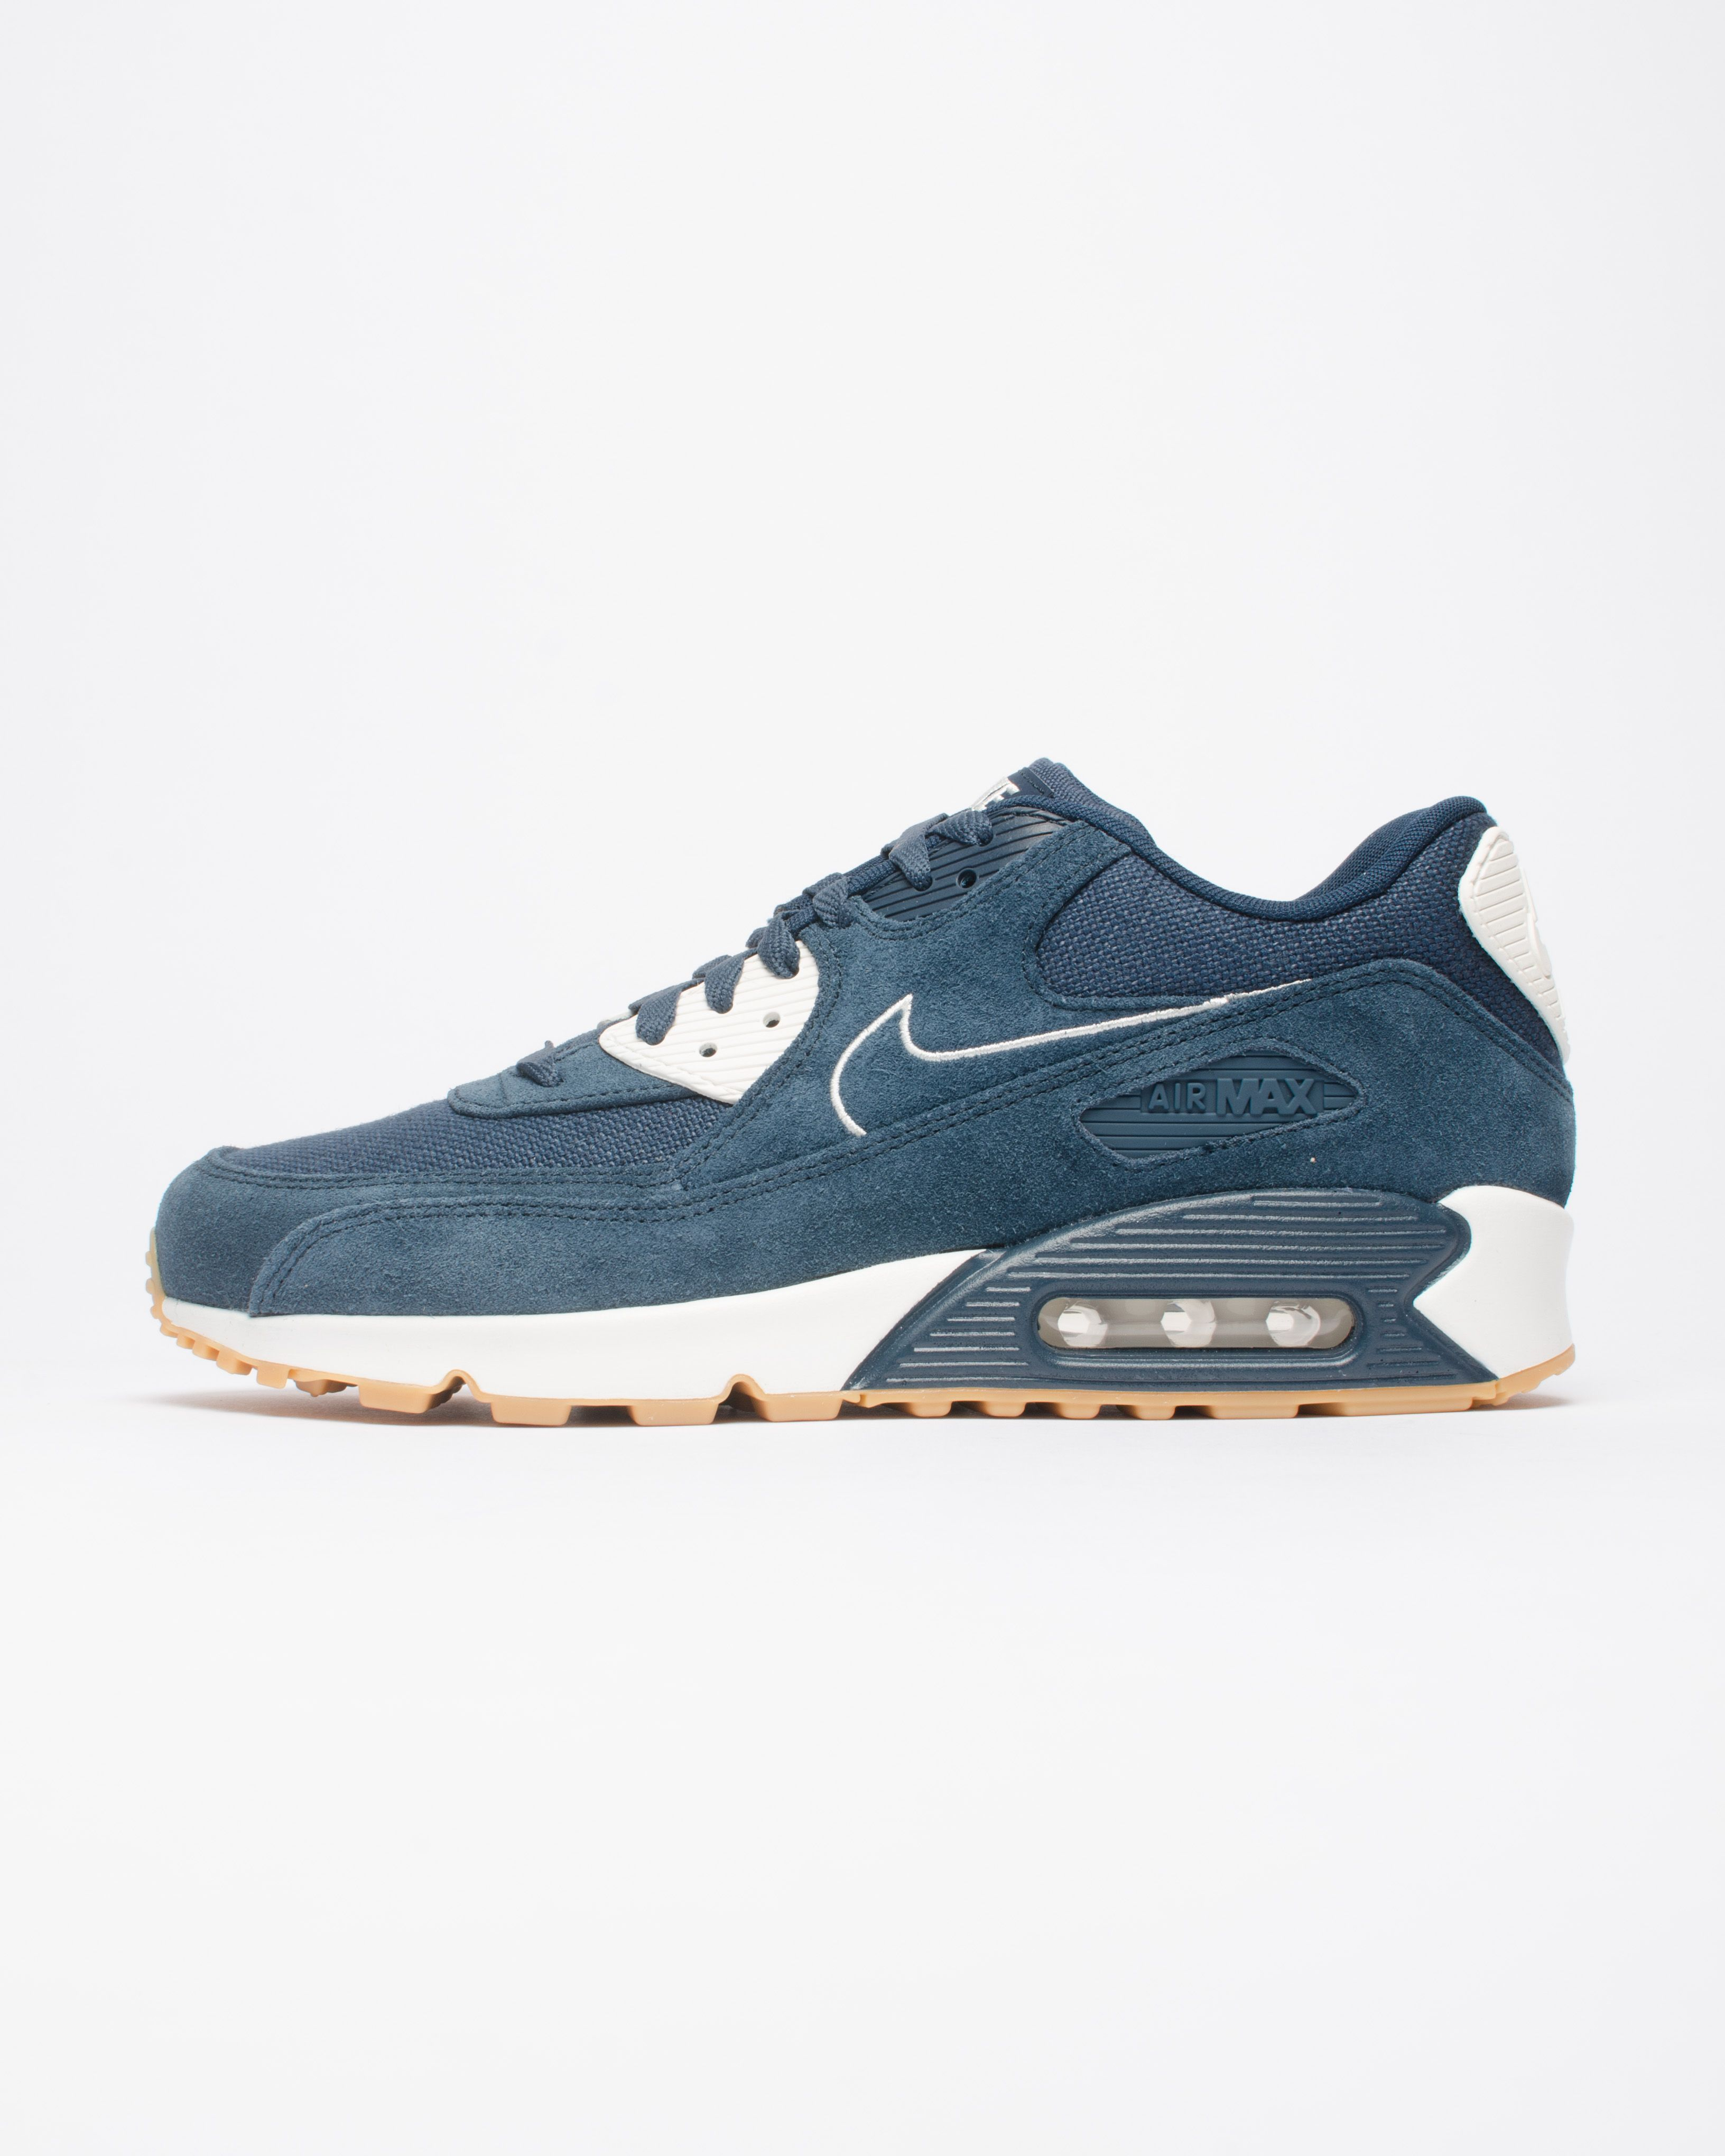 quality design a0df3 1fad1 Air Max 90 Premium at sivasdescalzo with international express shipping Nike  Timberland, Air Max 90